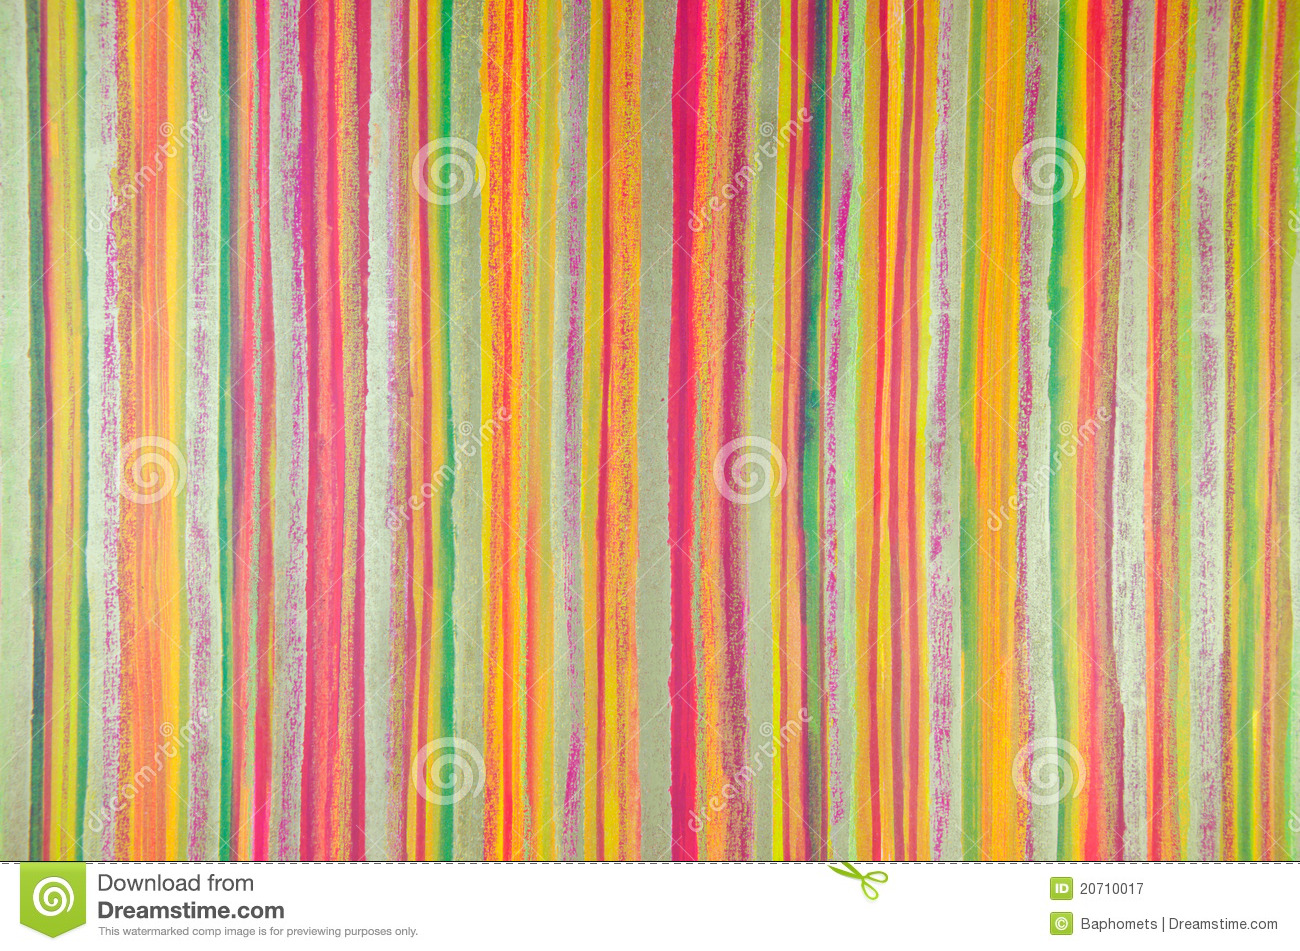 Line Art Design Background : Colorful abstract design art background stock image